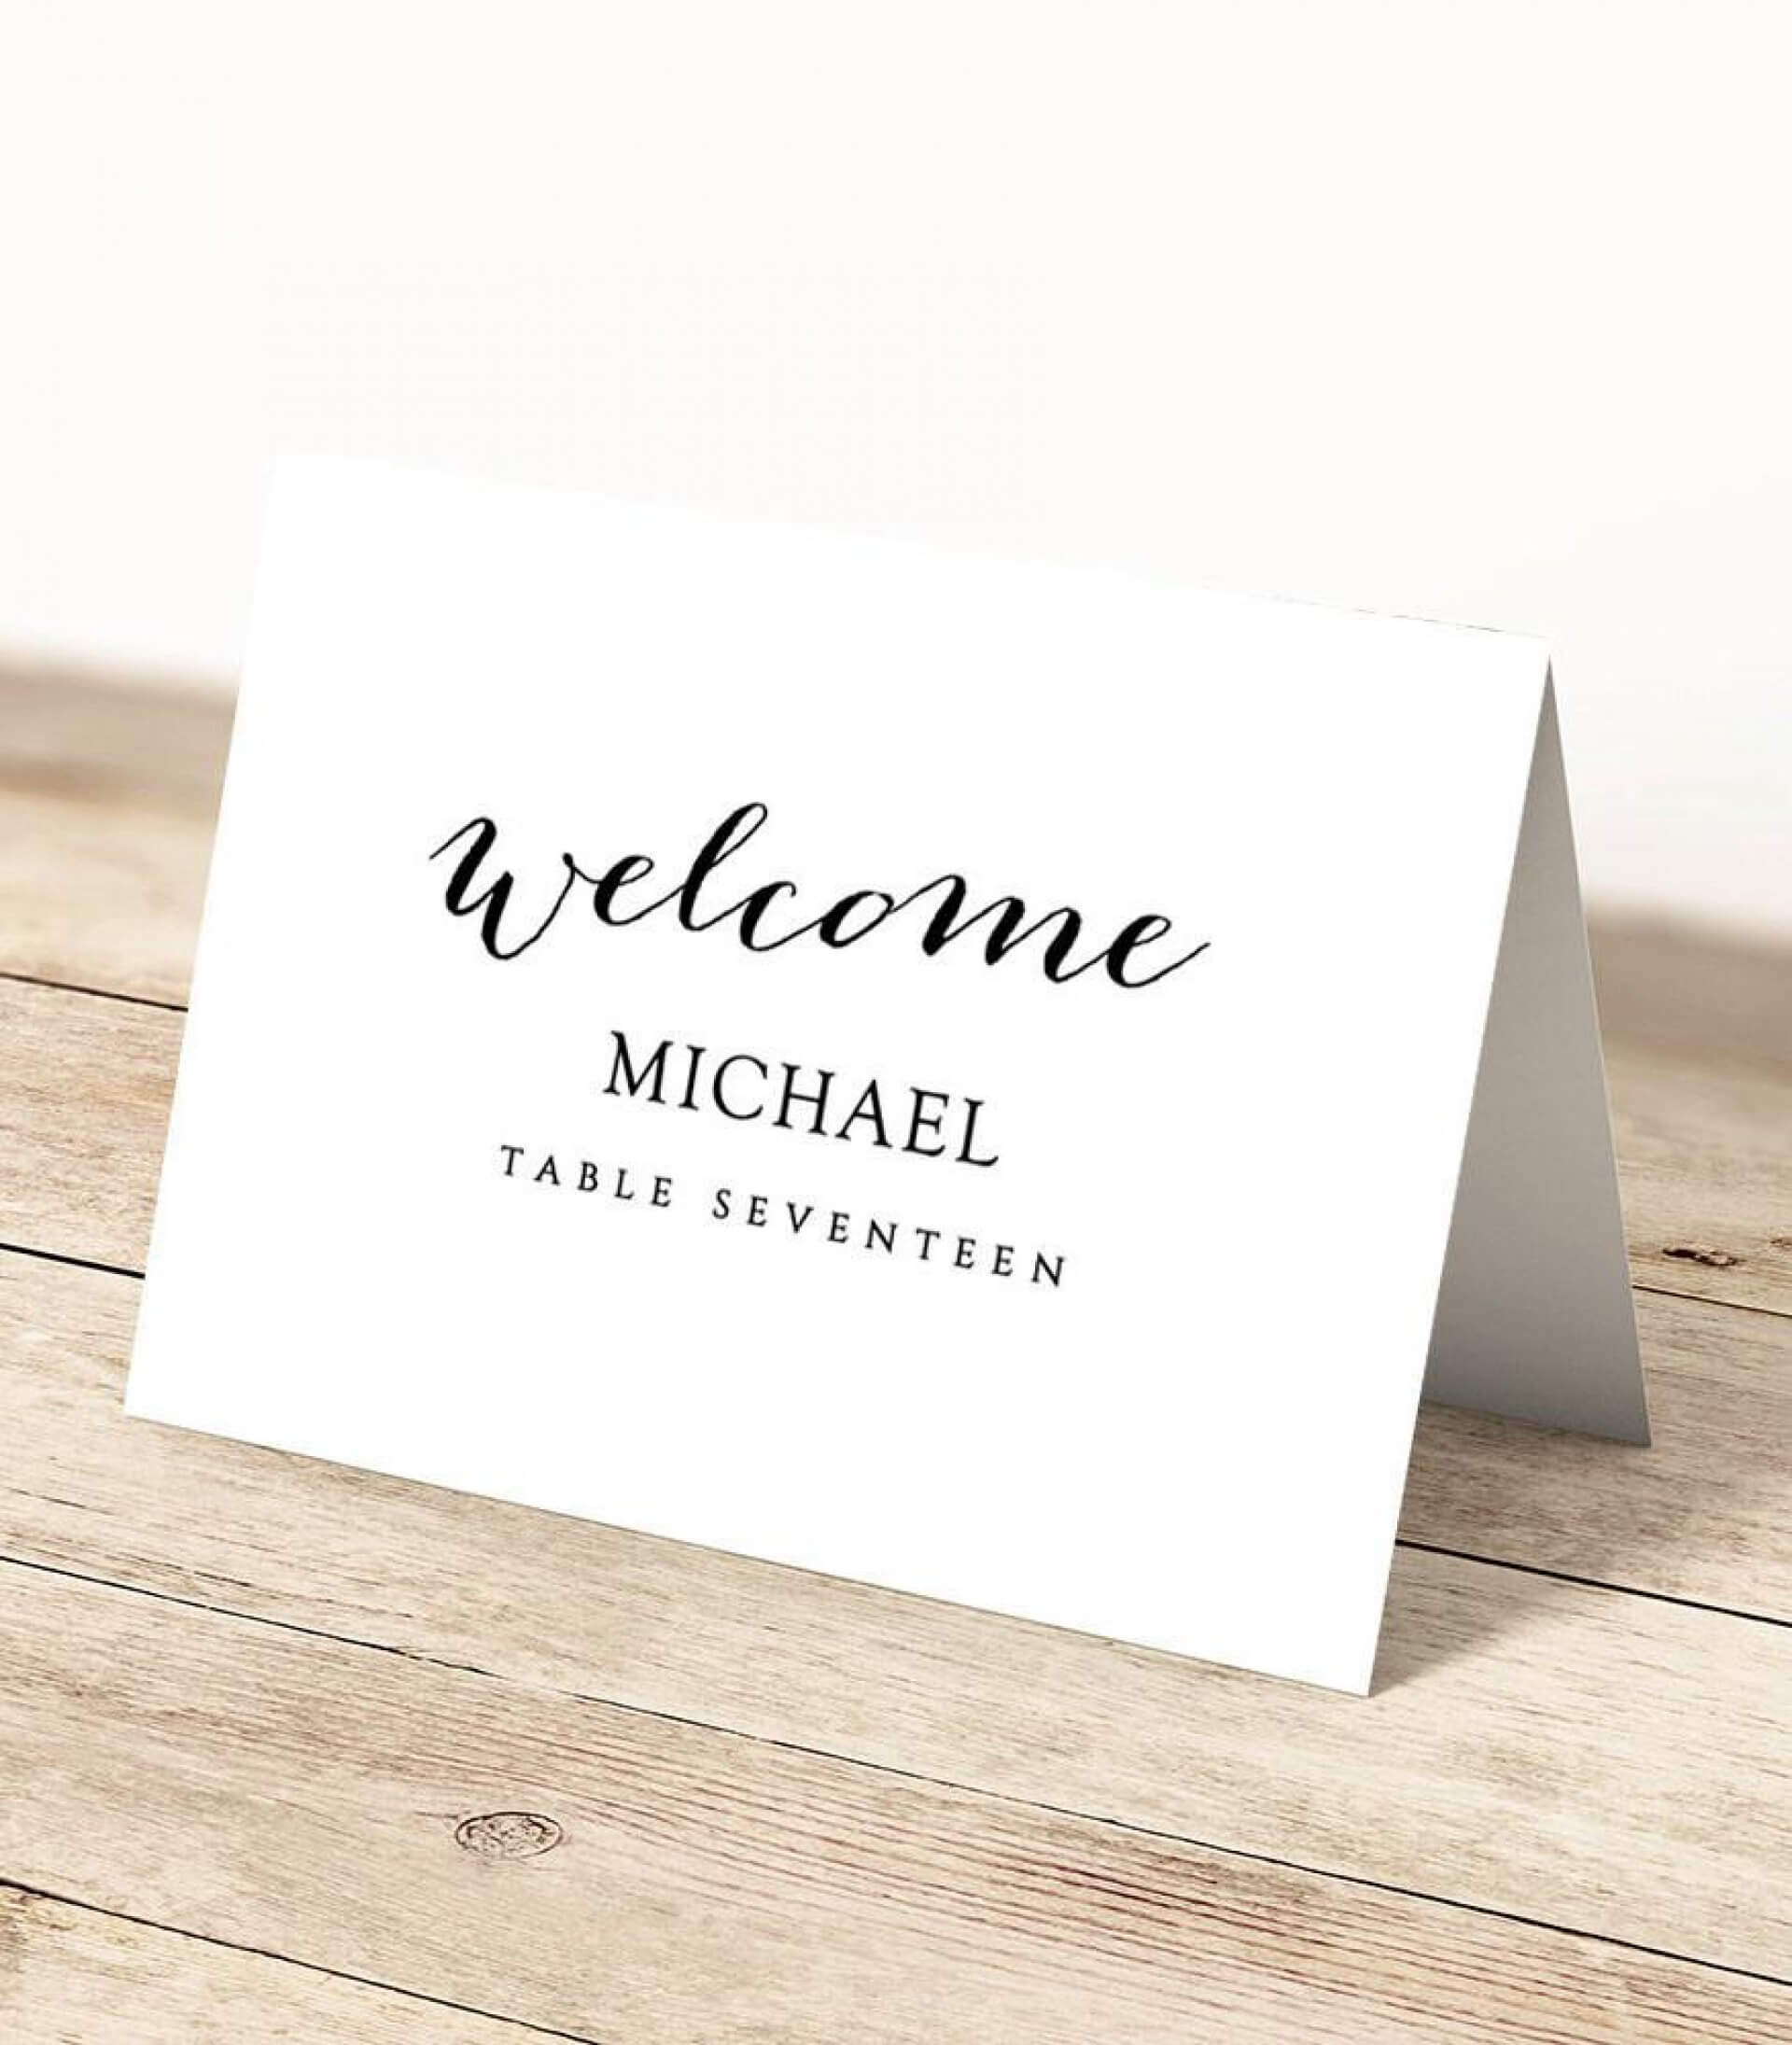 019 Template For Place Cards Il Fullxfull 1542140750 Dg3V Throughout Place Card Template Free 6 Per Page